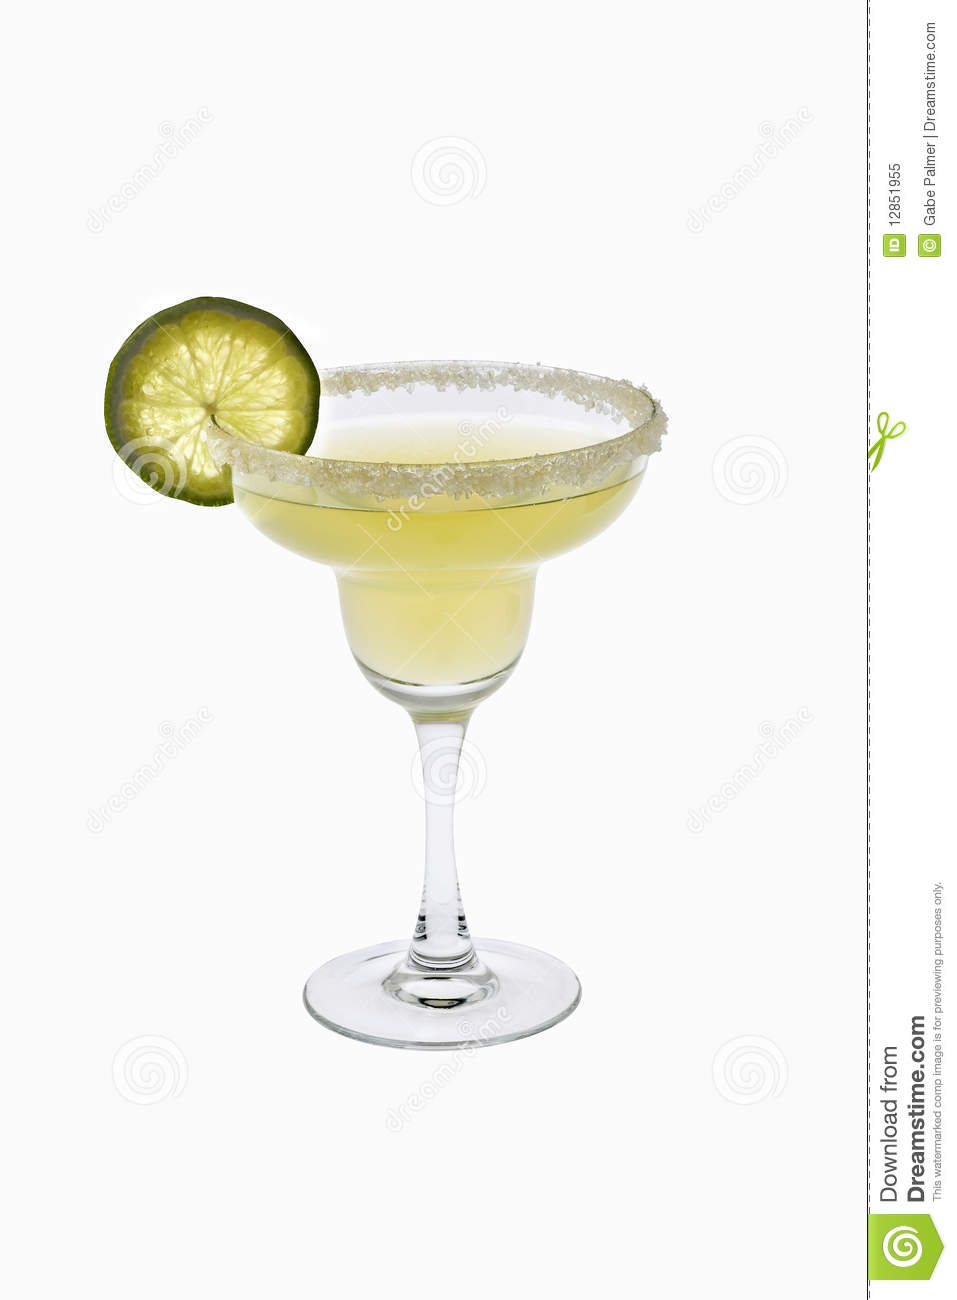 Margarita cocktail on a white background stock image for Cocktail margarita